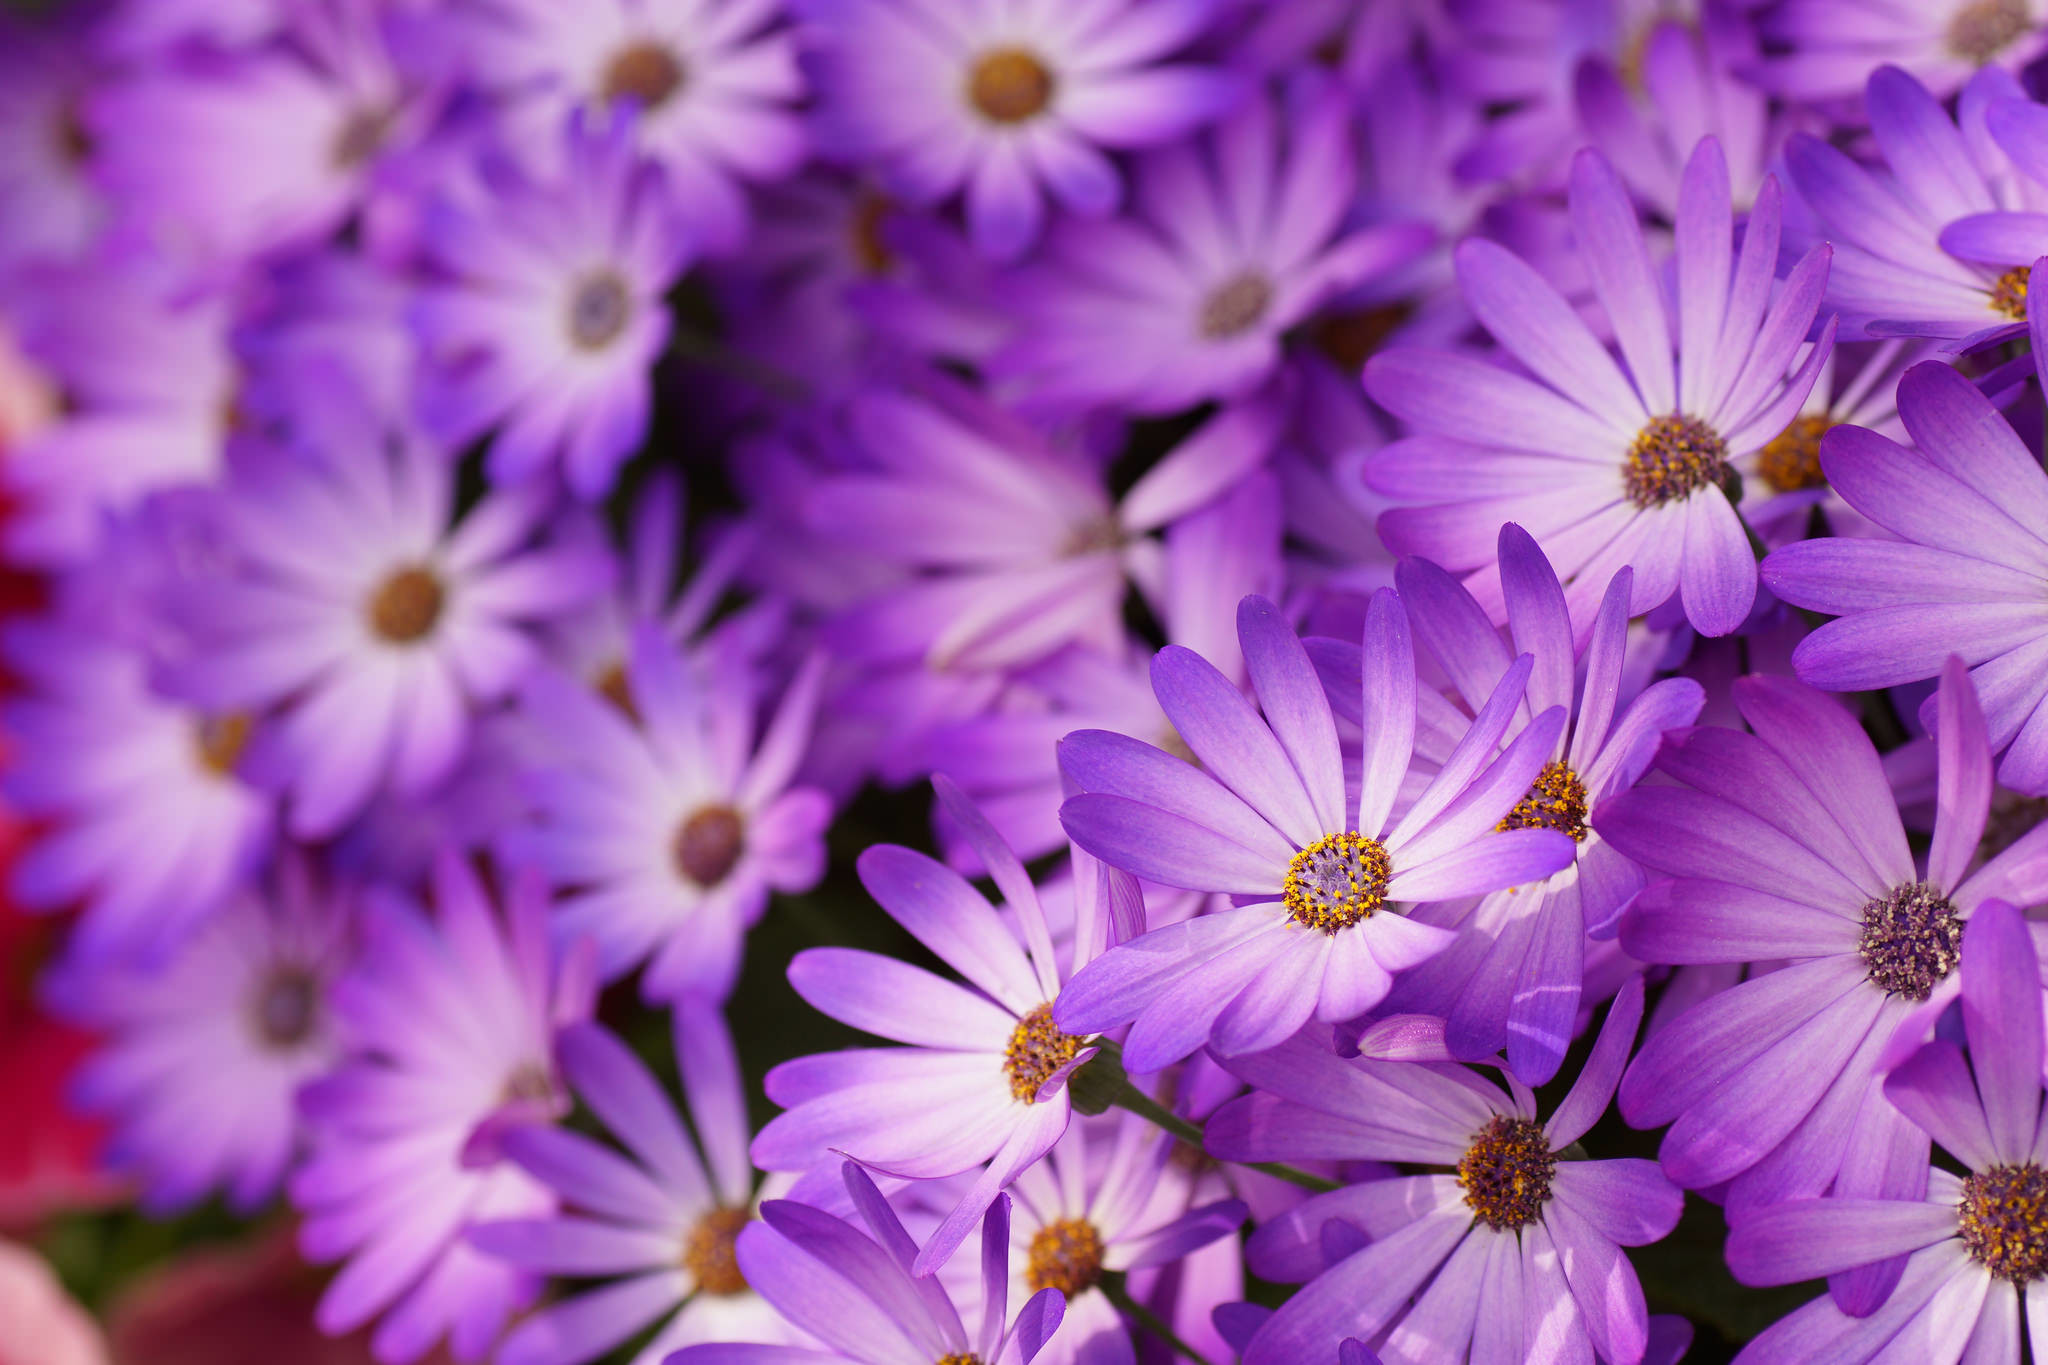 Daisy flower wallpapers 51 background pictures 2560x1600 daisy flower photo izmirmasajfo